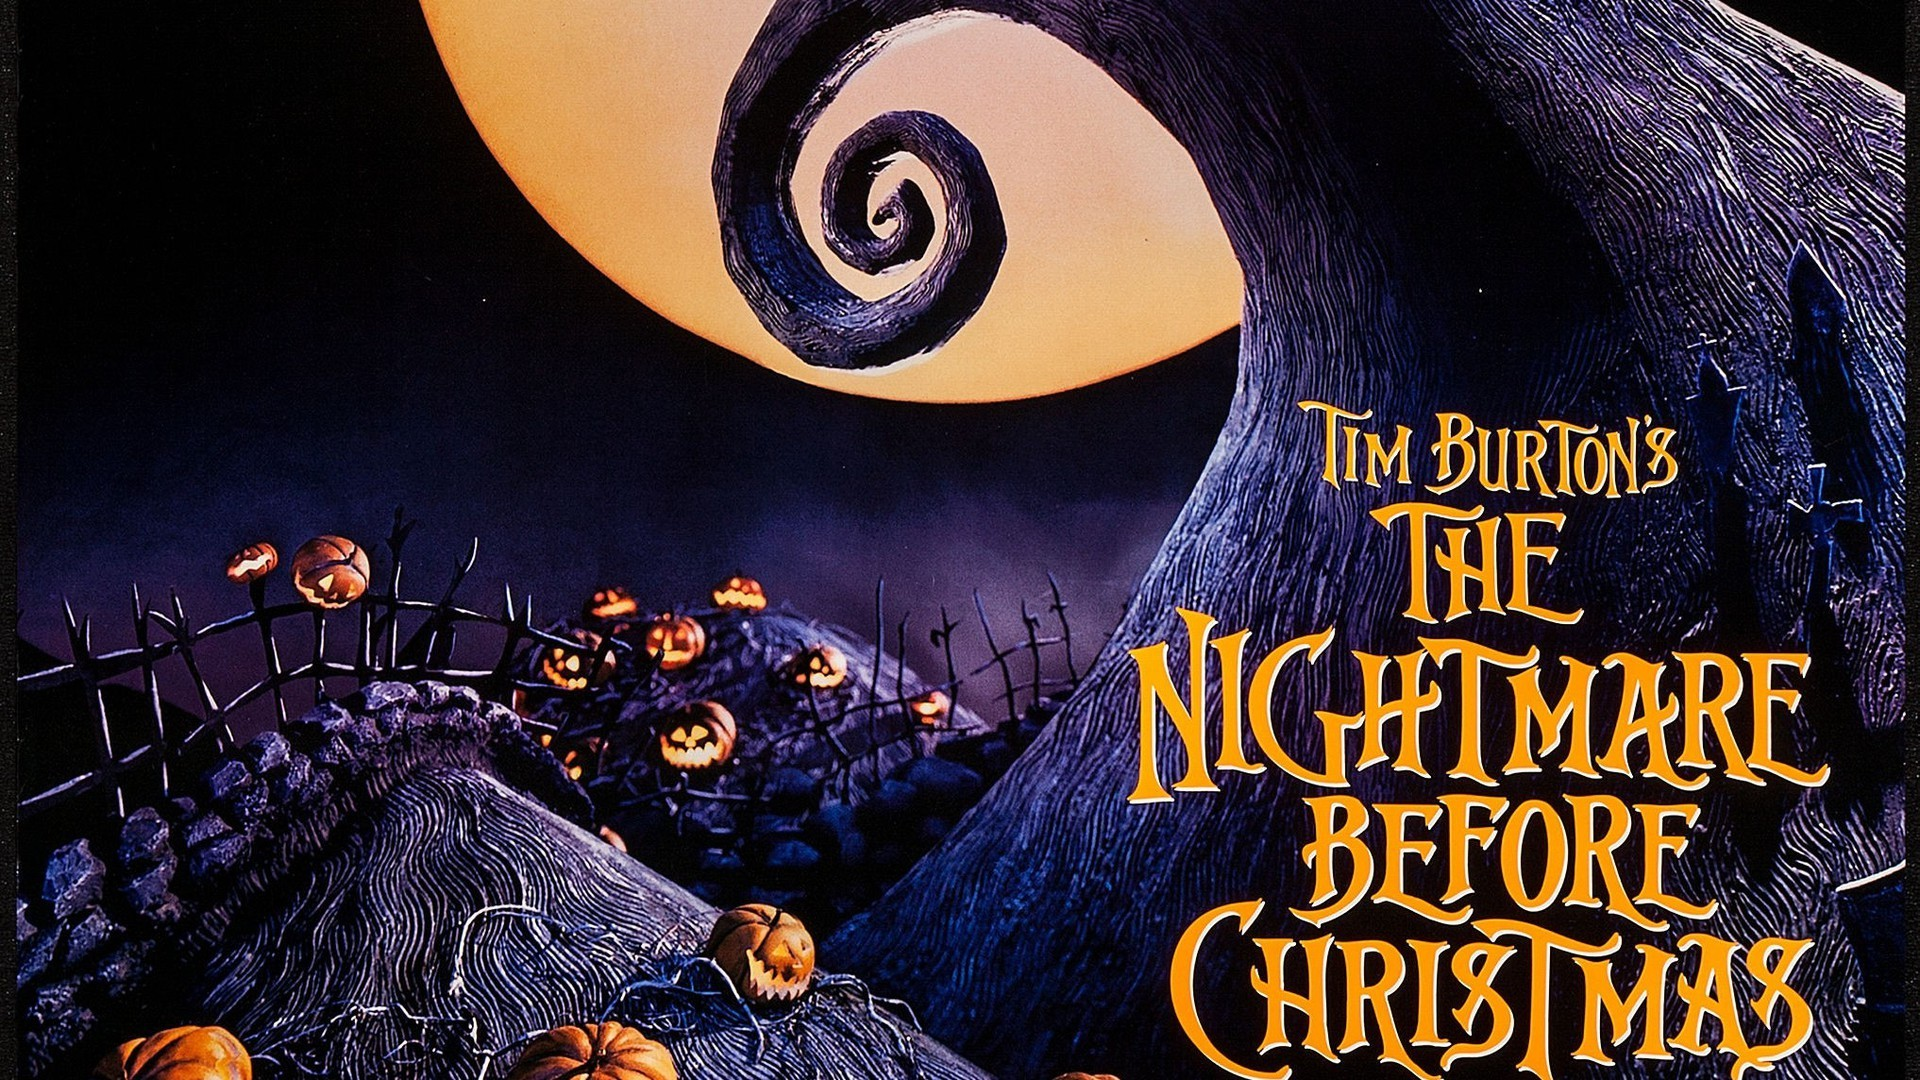 Nightmare Before Christmas Wallpaper Android.Nightmare Before Christmas Background Download Free